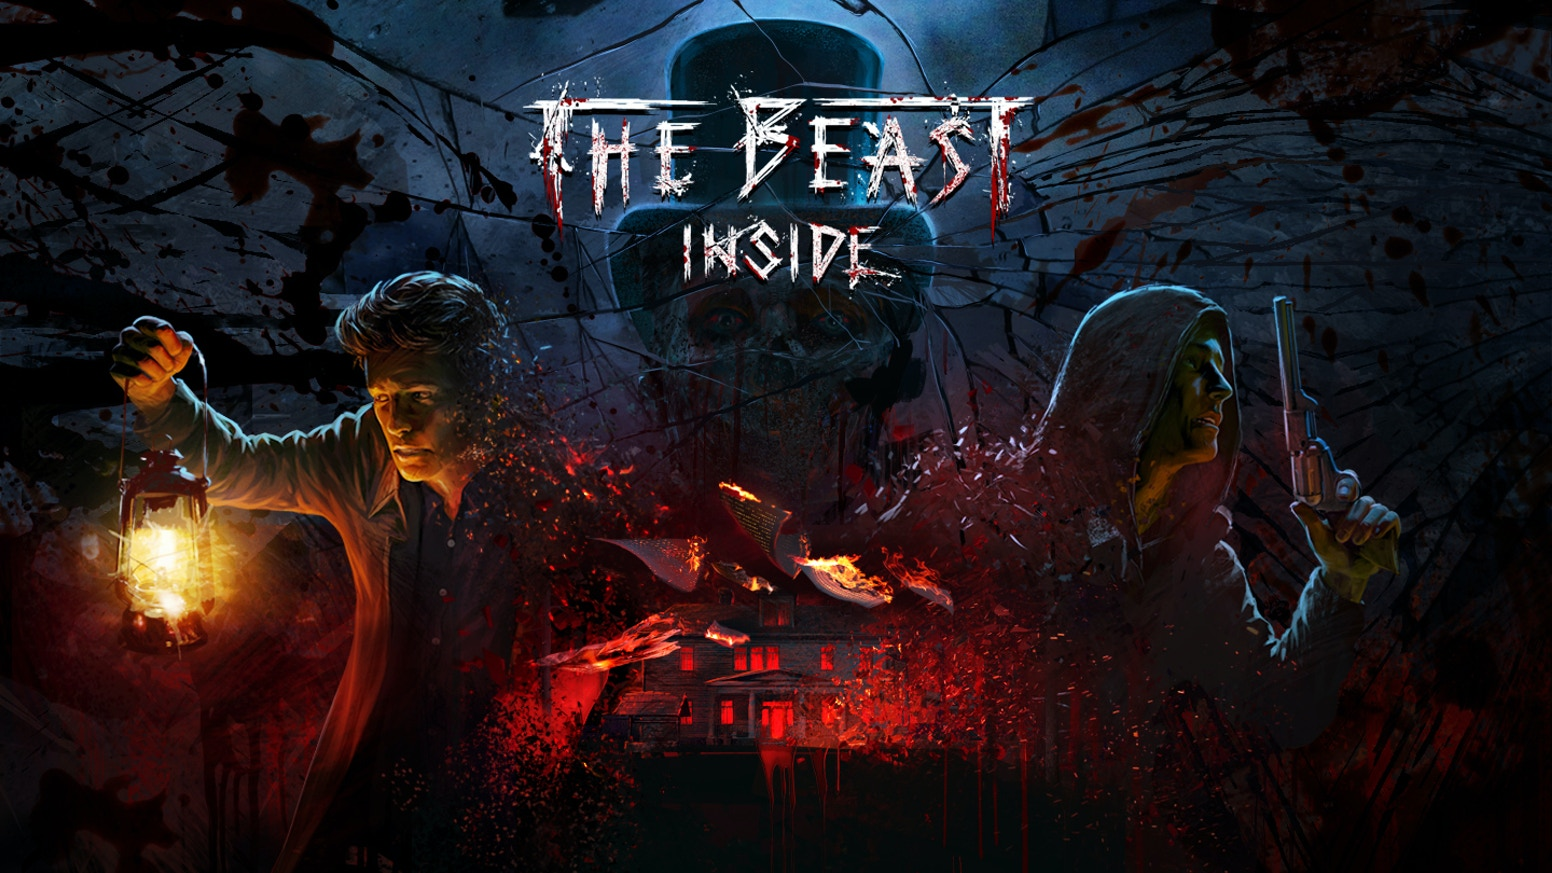 The Beast Inside - a photorealistic horror game by PlayWay